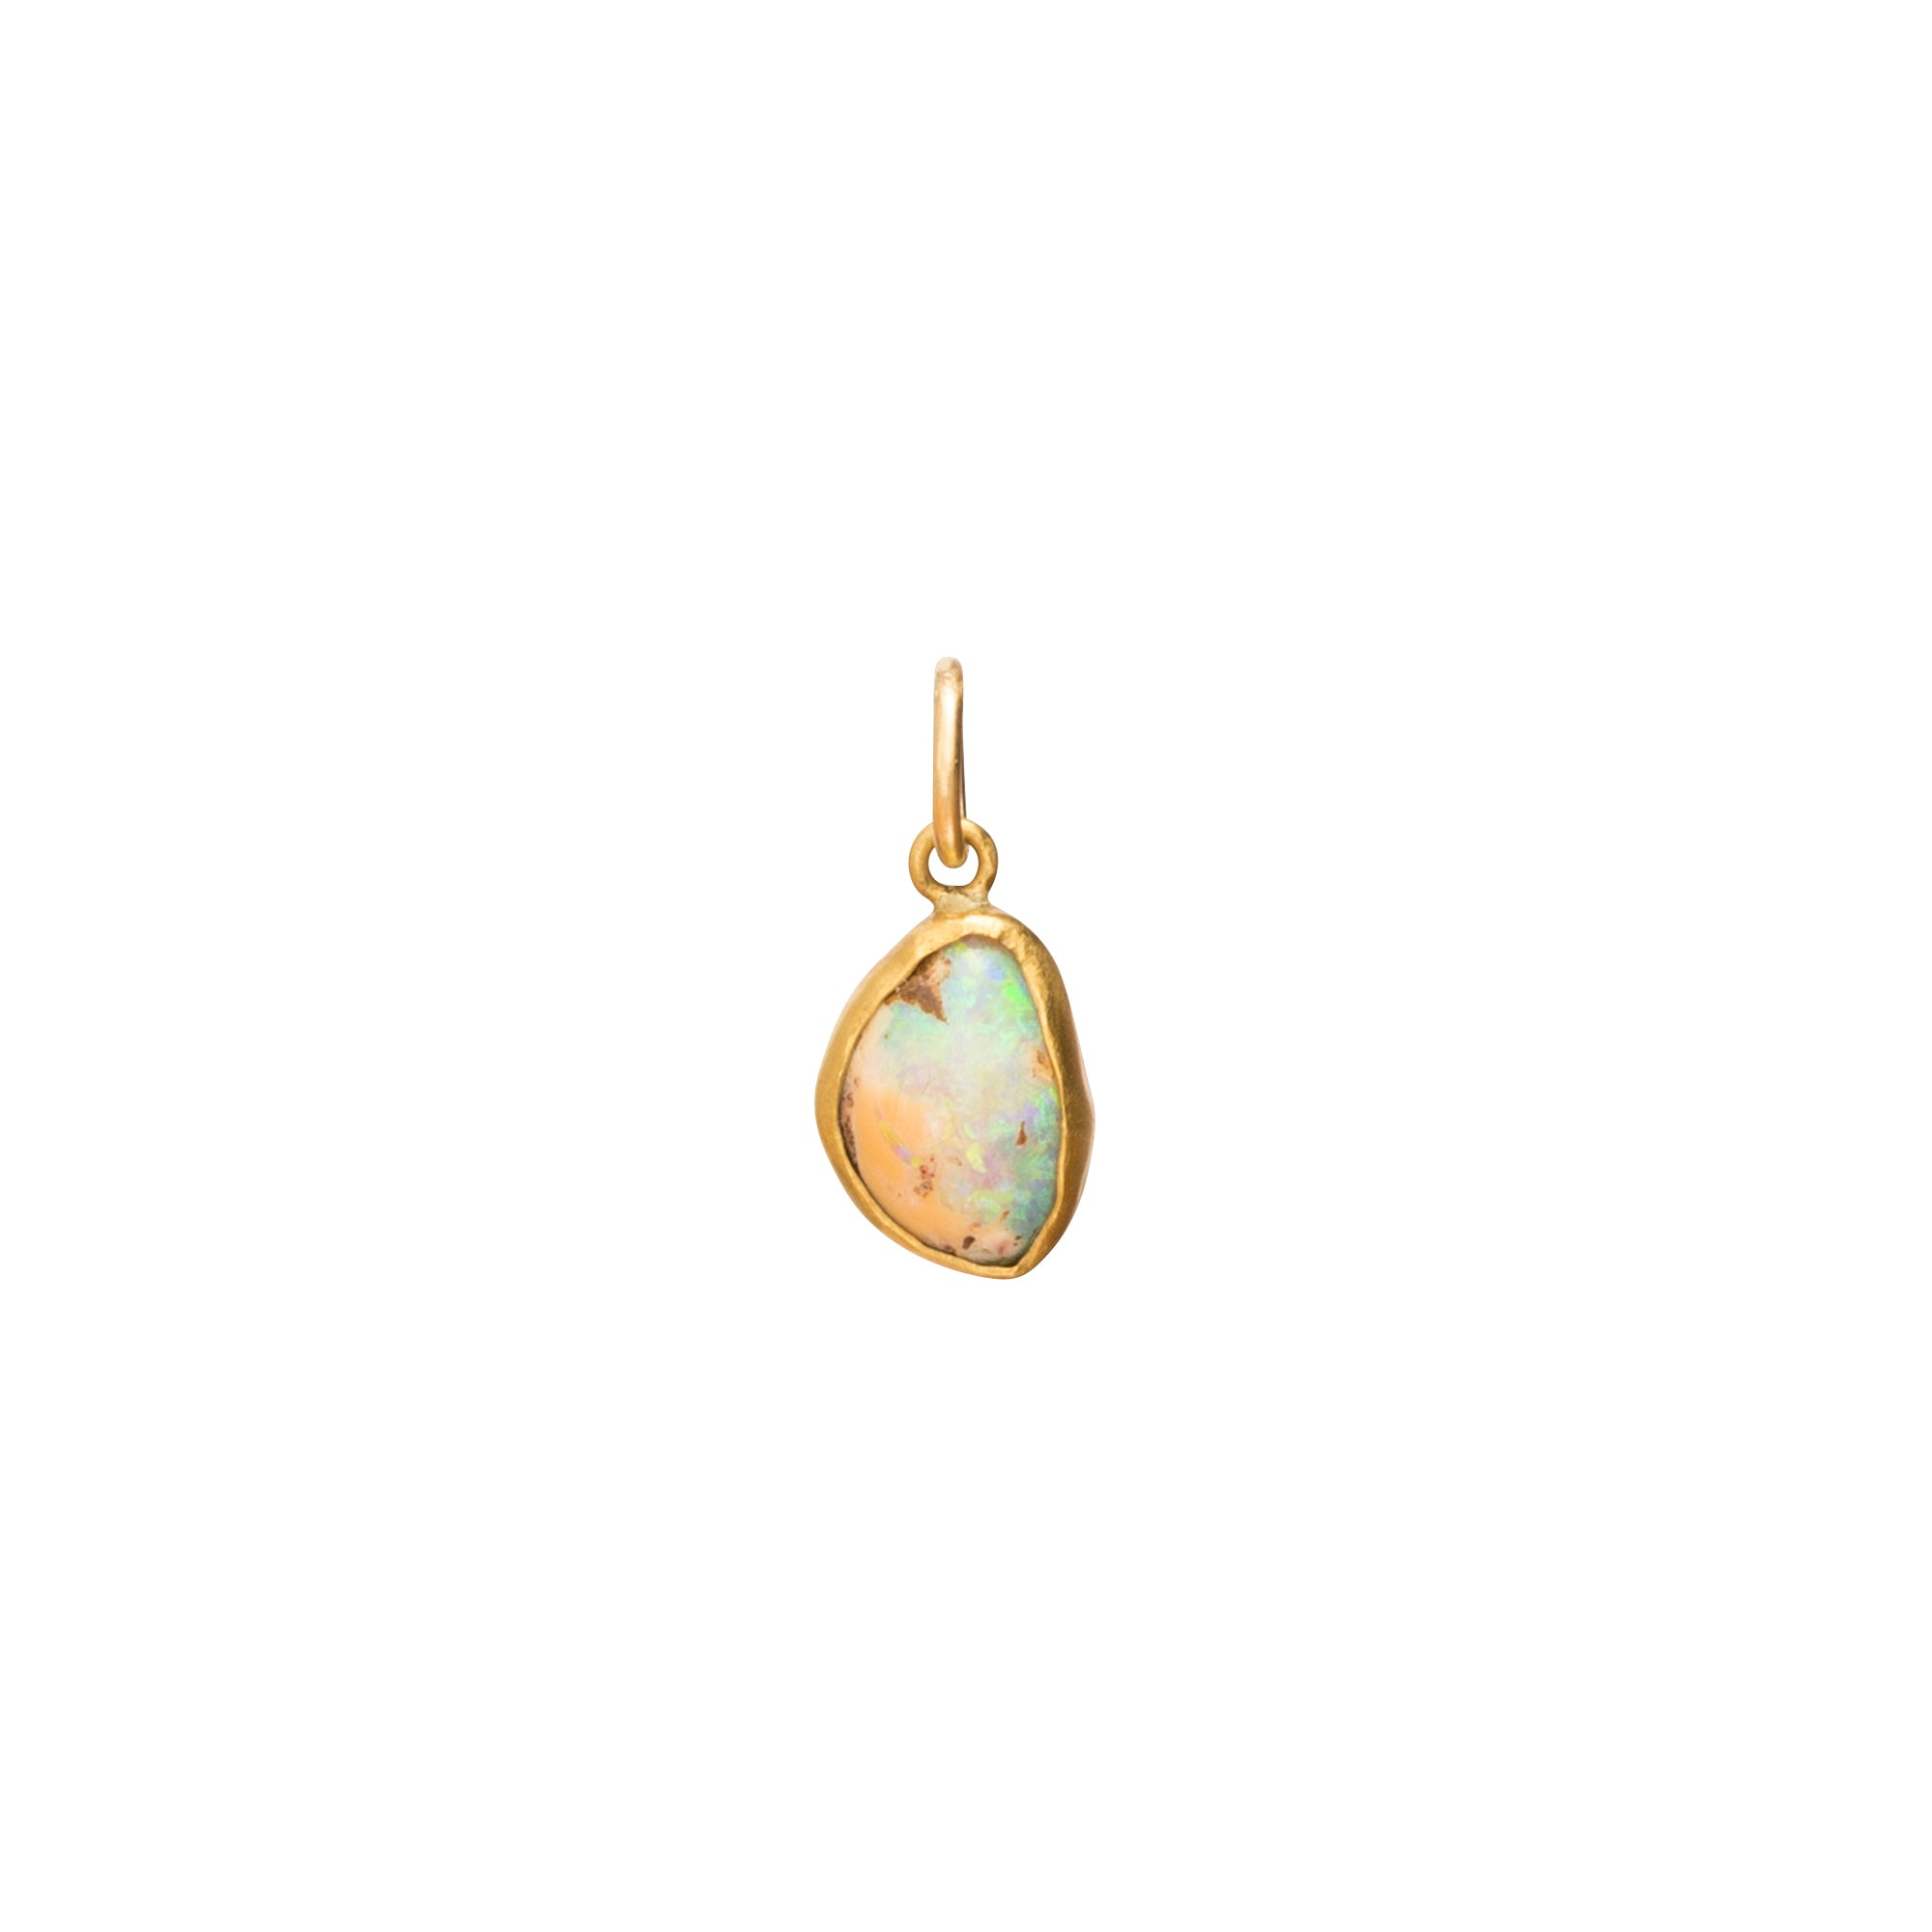 Boulder Opal Pendant by Margery Hirschey for Broken English Jewelry